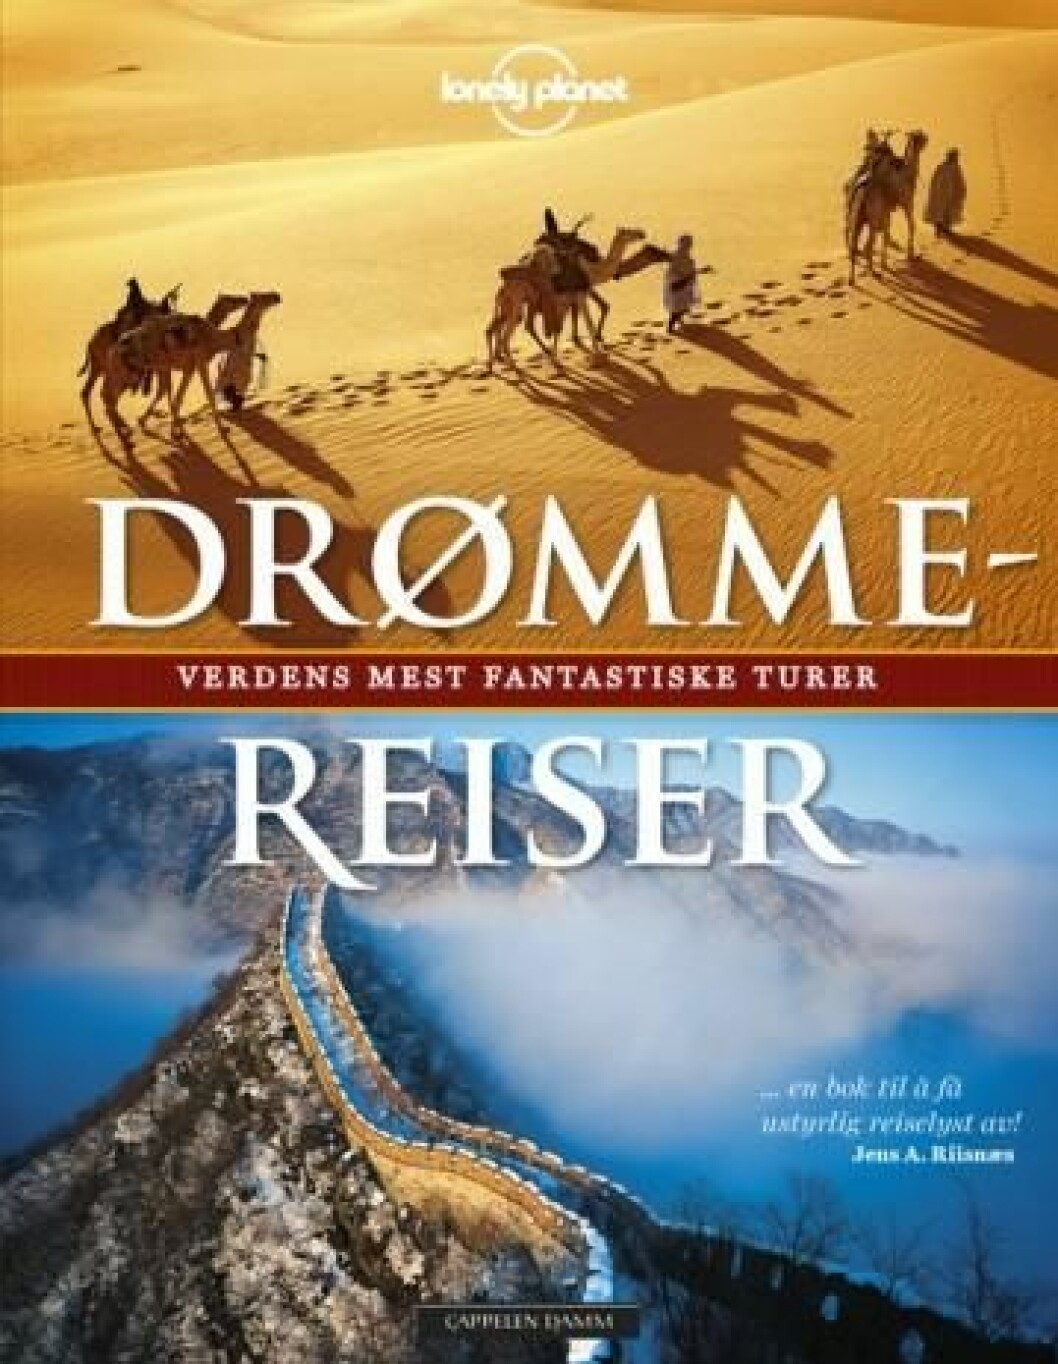 Bok |249,-| https://chillout.no/collections/gave-inspirasjon/products/drommereiser-lonely-planet